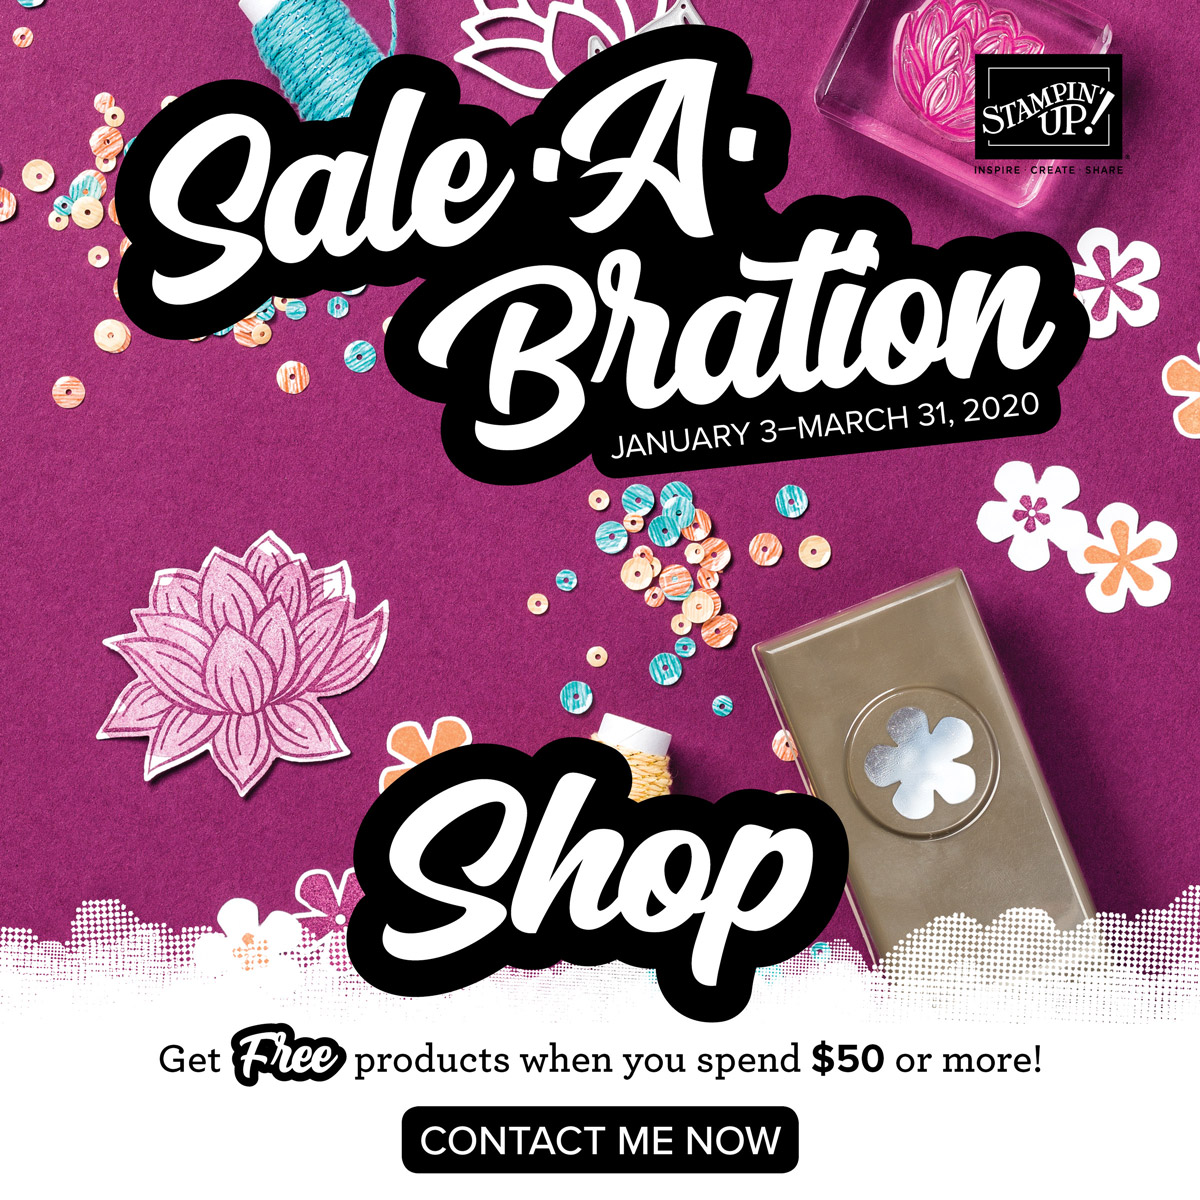 2020 Sale-A-Bration Brochure